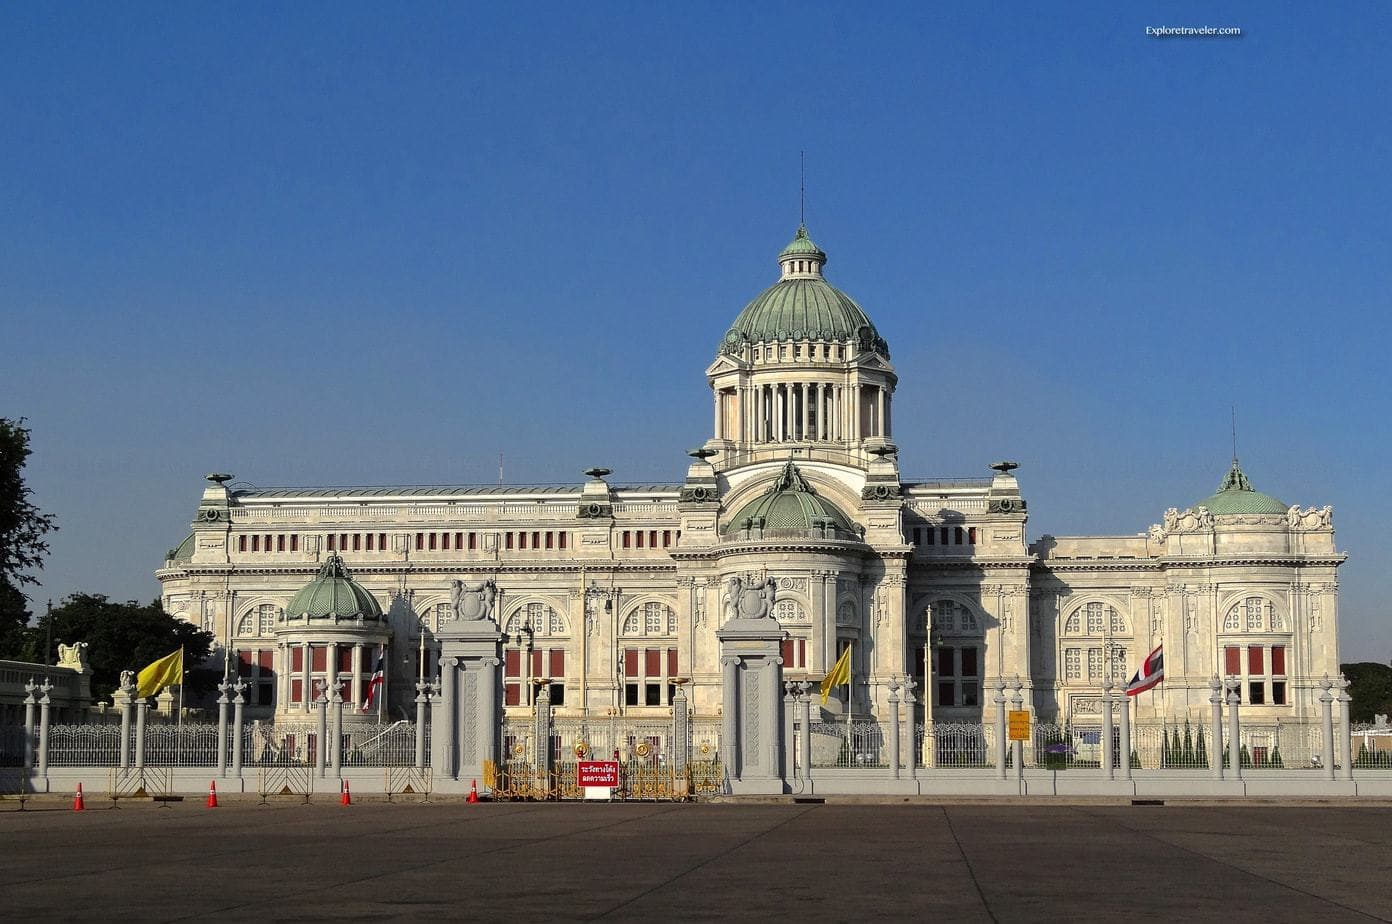 The Ananta Samakhom Throne Hall in Bangkok, Thailand